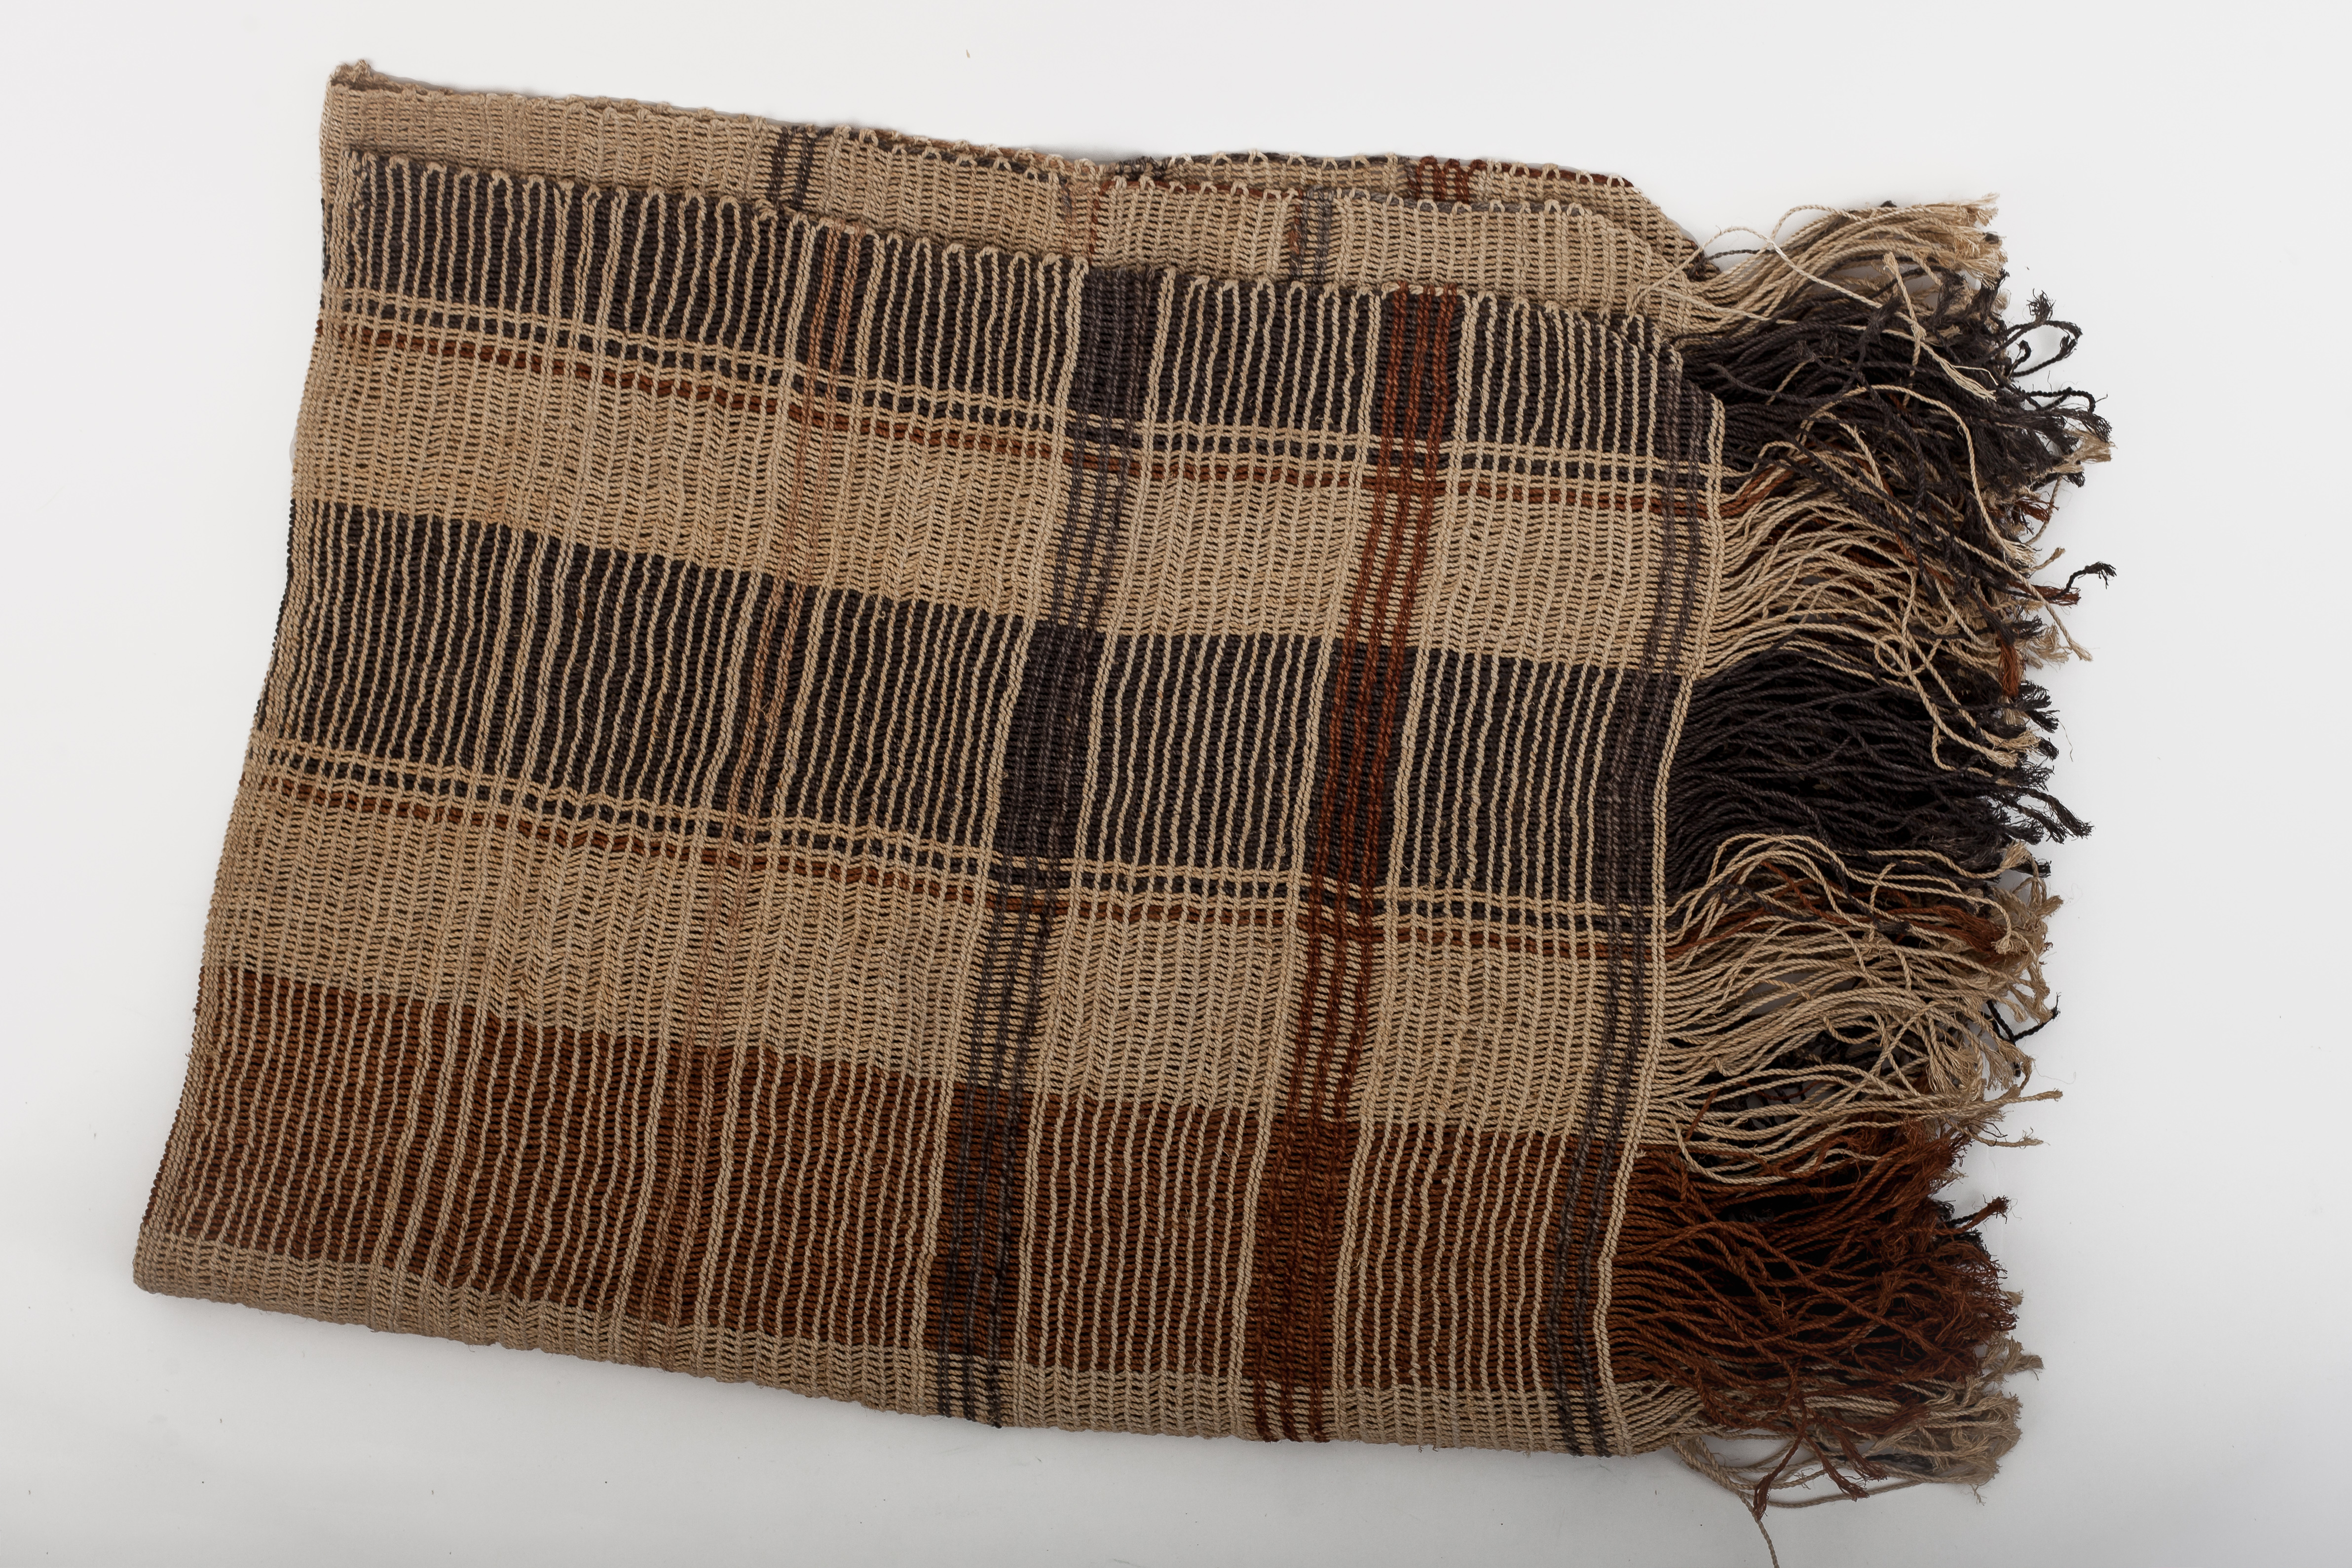 They lie down on a blanket called 'itarani' and they cover up with a blanket called 'pepei.' Both are made in the design called 'docora', which is woven without a needle, just with the hands, making a fringe on the lower edge.